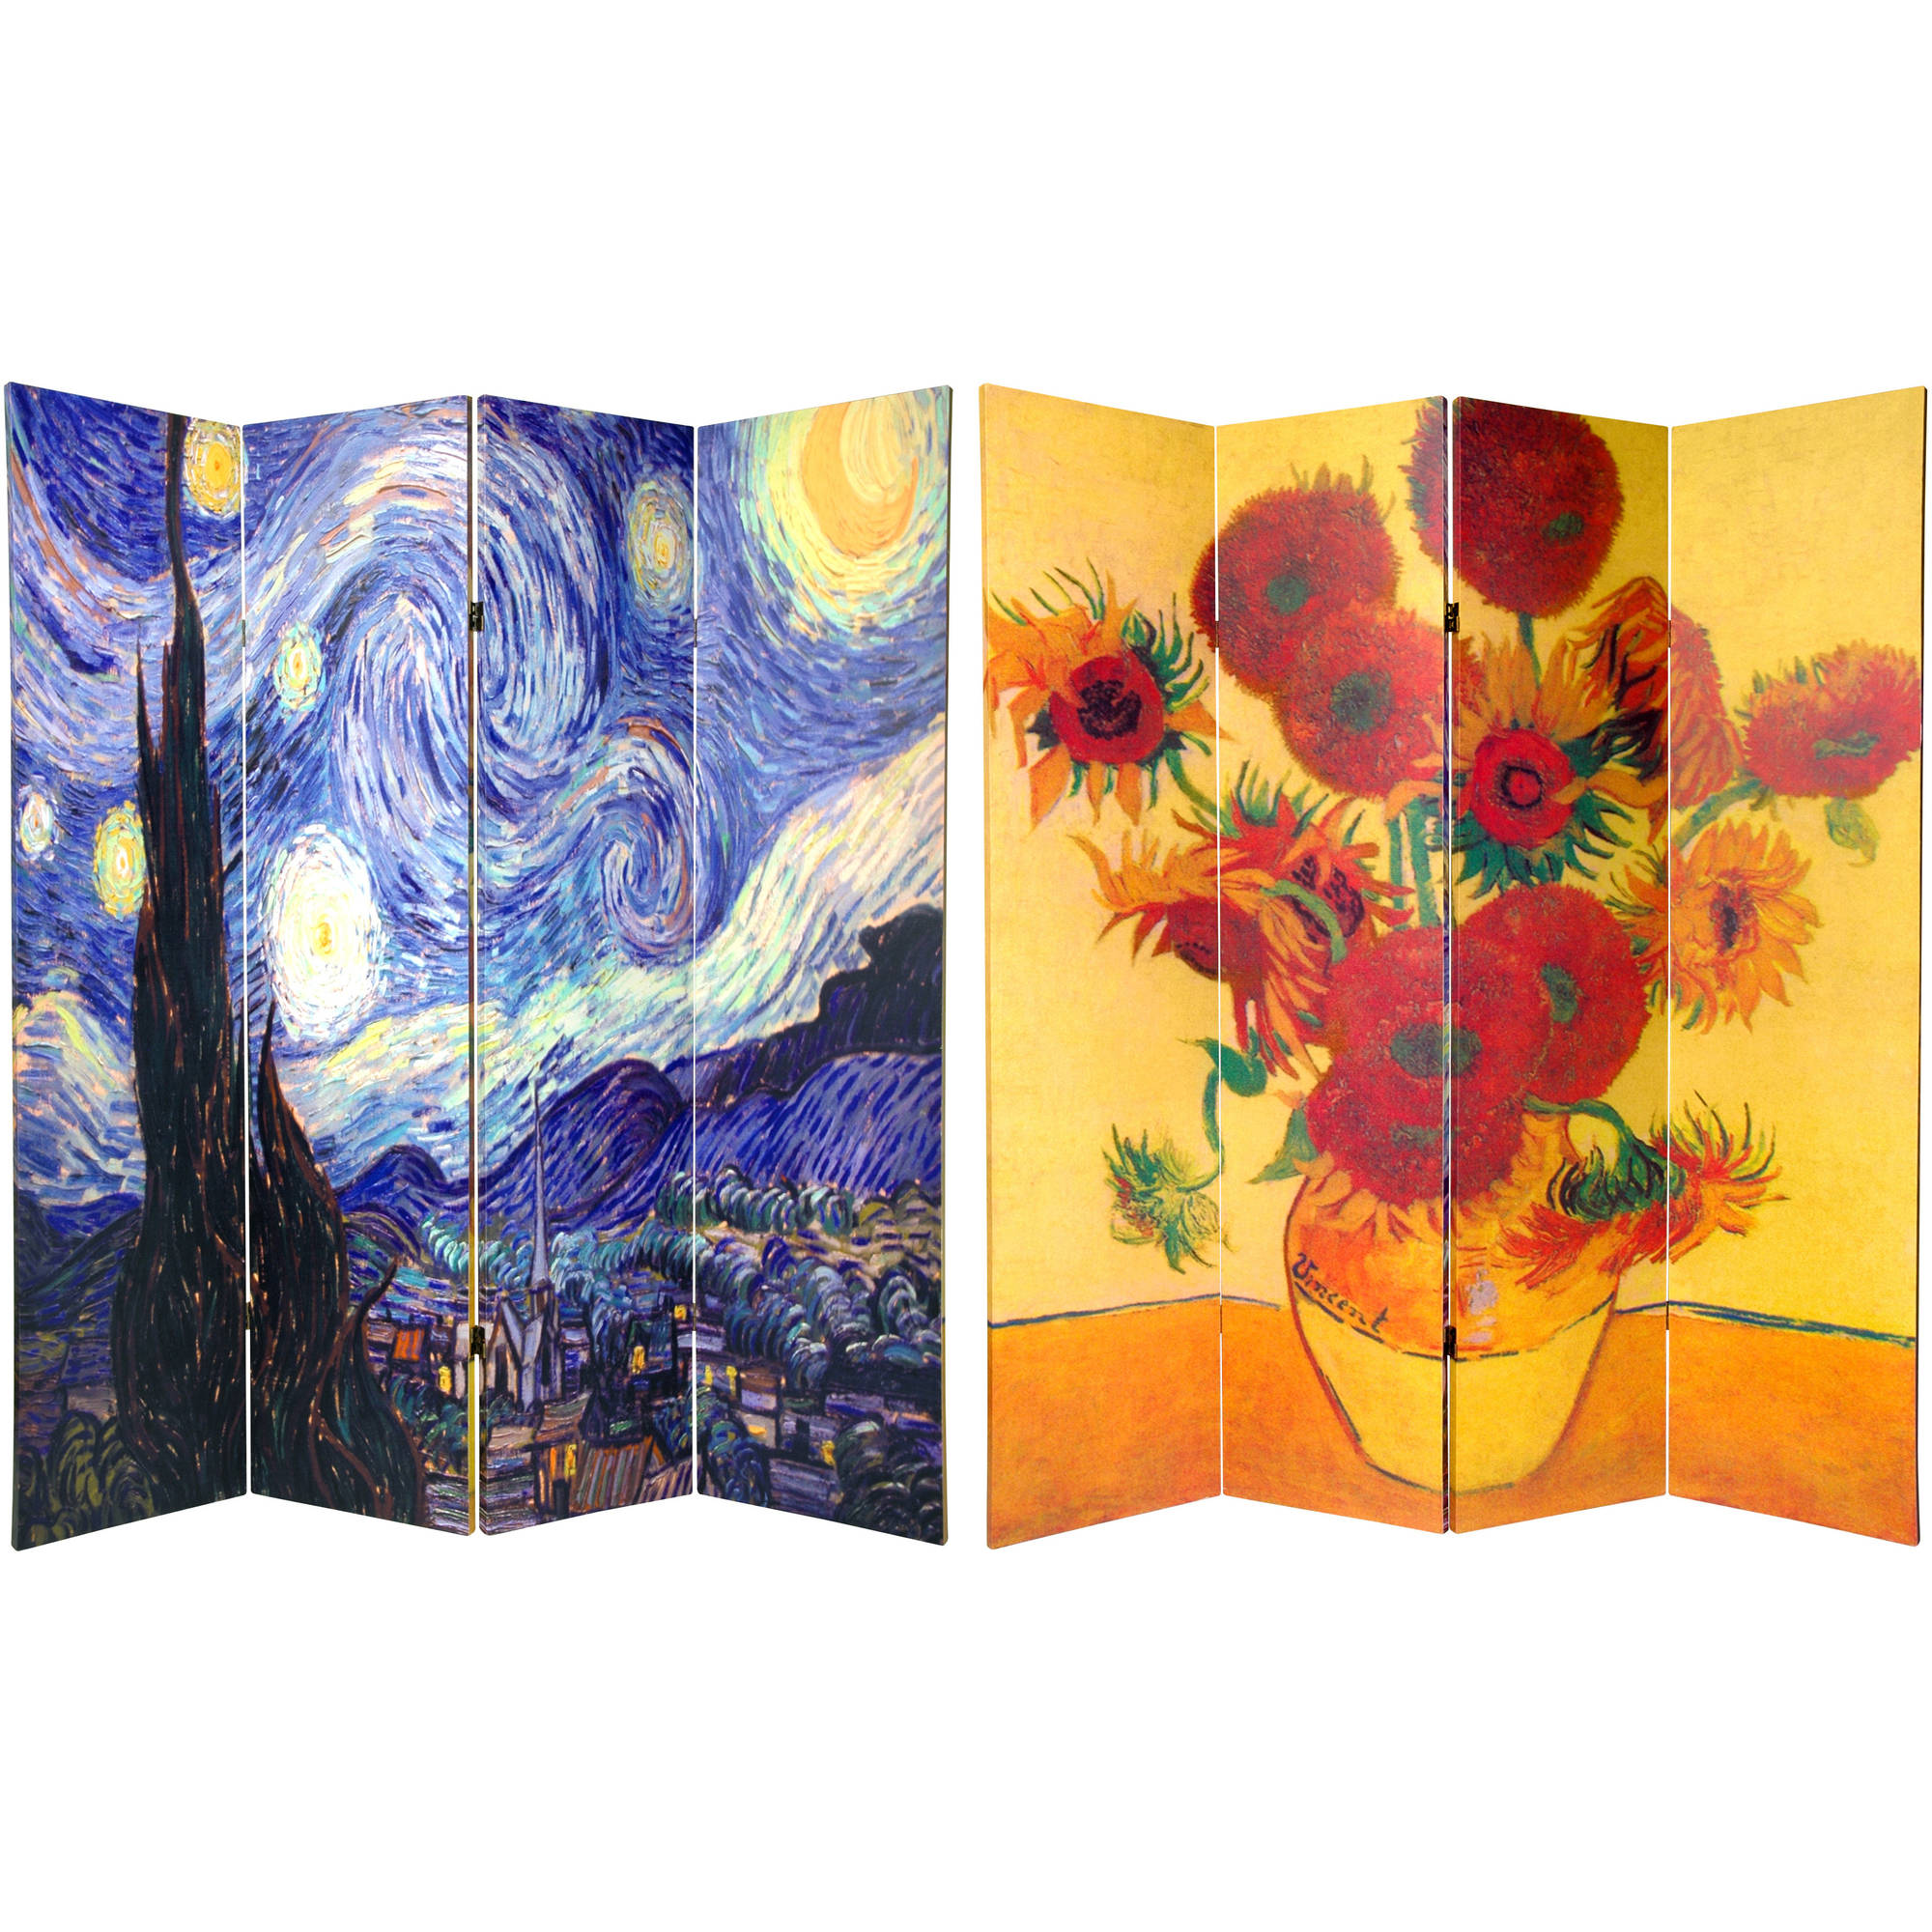 6' Tall Double Sided Works of Van Gogh Canvas Room Divider 4 Panel